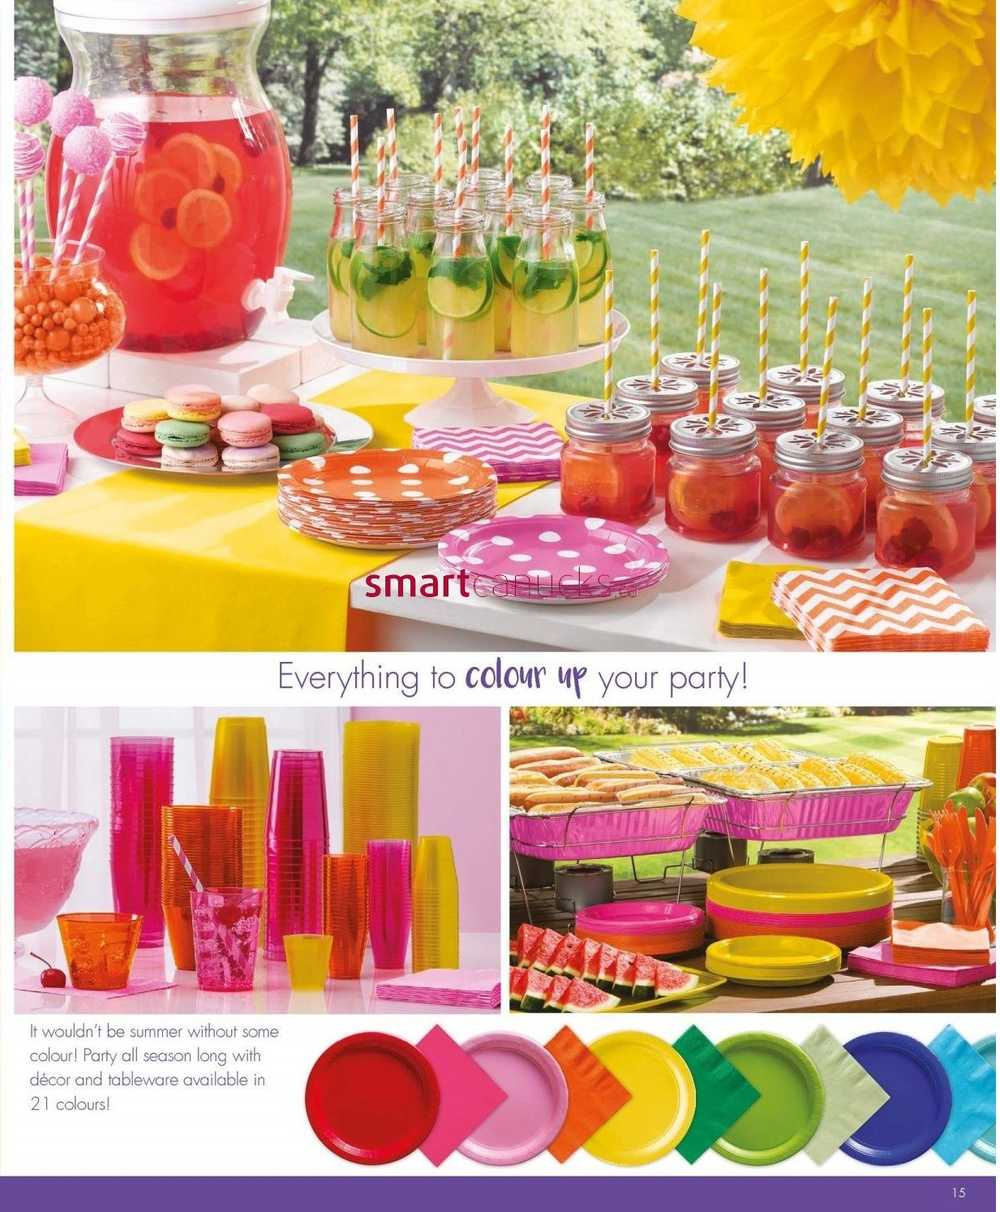 Party city canada coupons